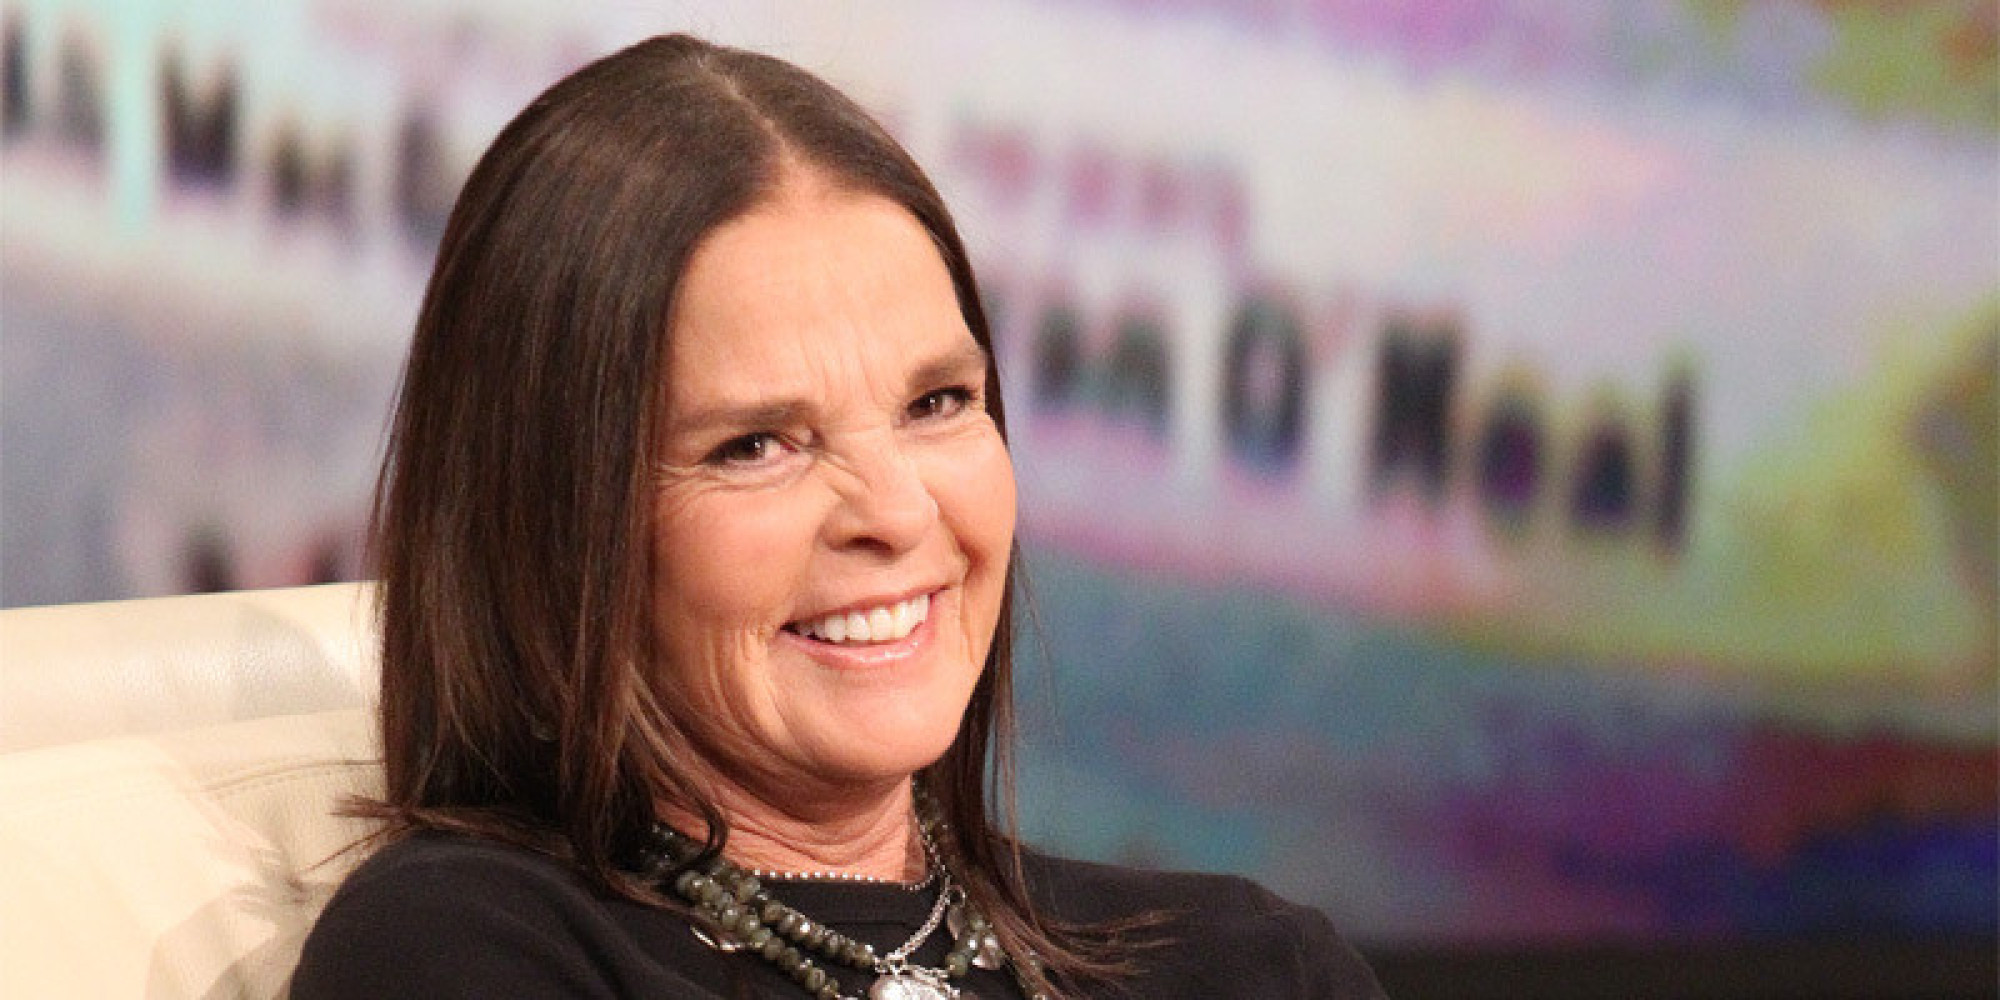 ali macgraw ageali macgraw young, ali macgraw 2016, ali macgraw today, ali macgraw and ryan o'neal movie, ali macgraw love story, ali macgraw height, ali macgraw steve mcqueen movie, ali macgraw and ryan o'neal 2014, ali macgraw, ali macgraw yoga, ali macgraw style, ali macgraw wiki, ali macgraw wikipedia, ali macgraw imdb, ali macgraw biography, ali macgraw kendall jenner, ali macgraw love story fashion, ali macgraw net worth, ali macgraw photos, ali macgraw age